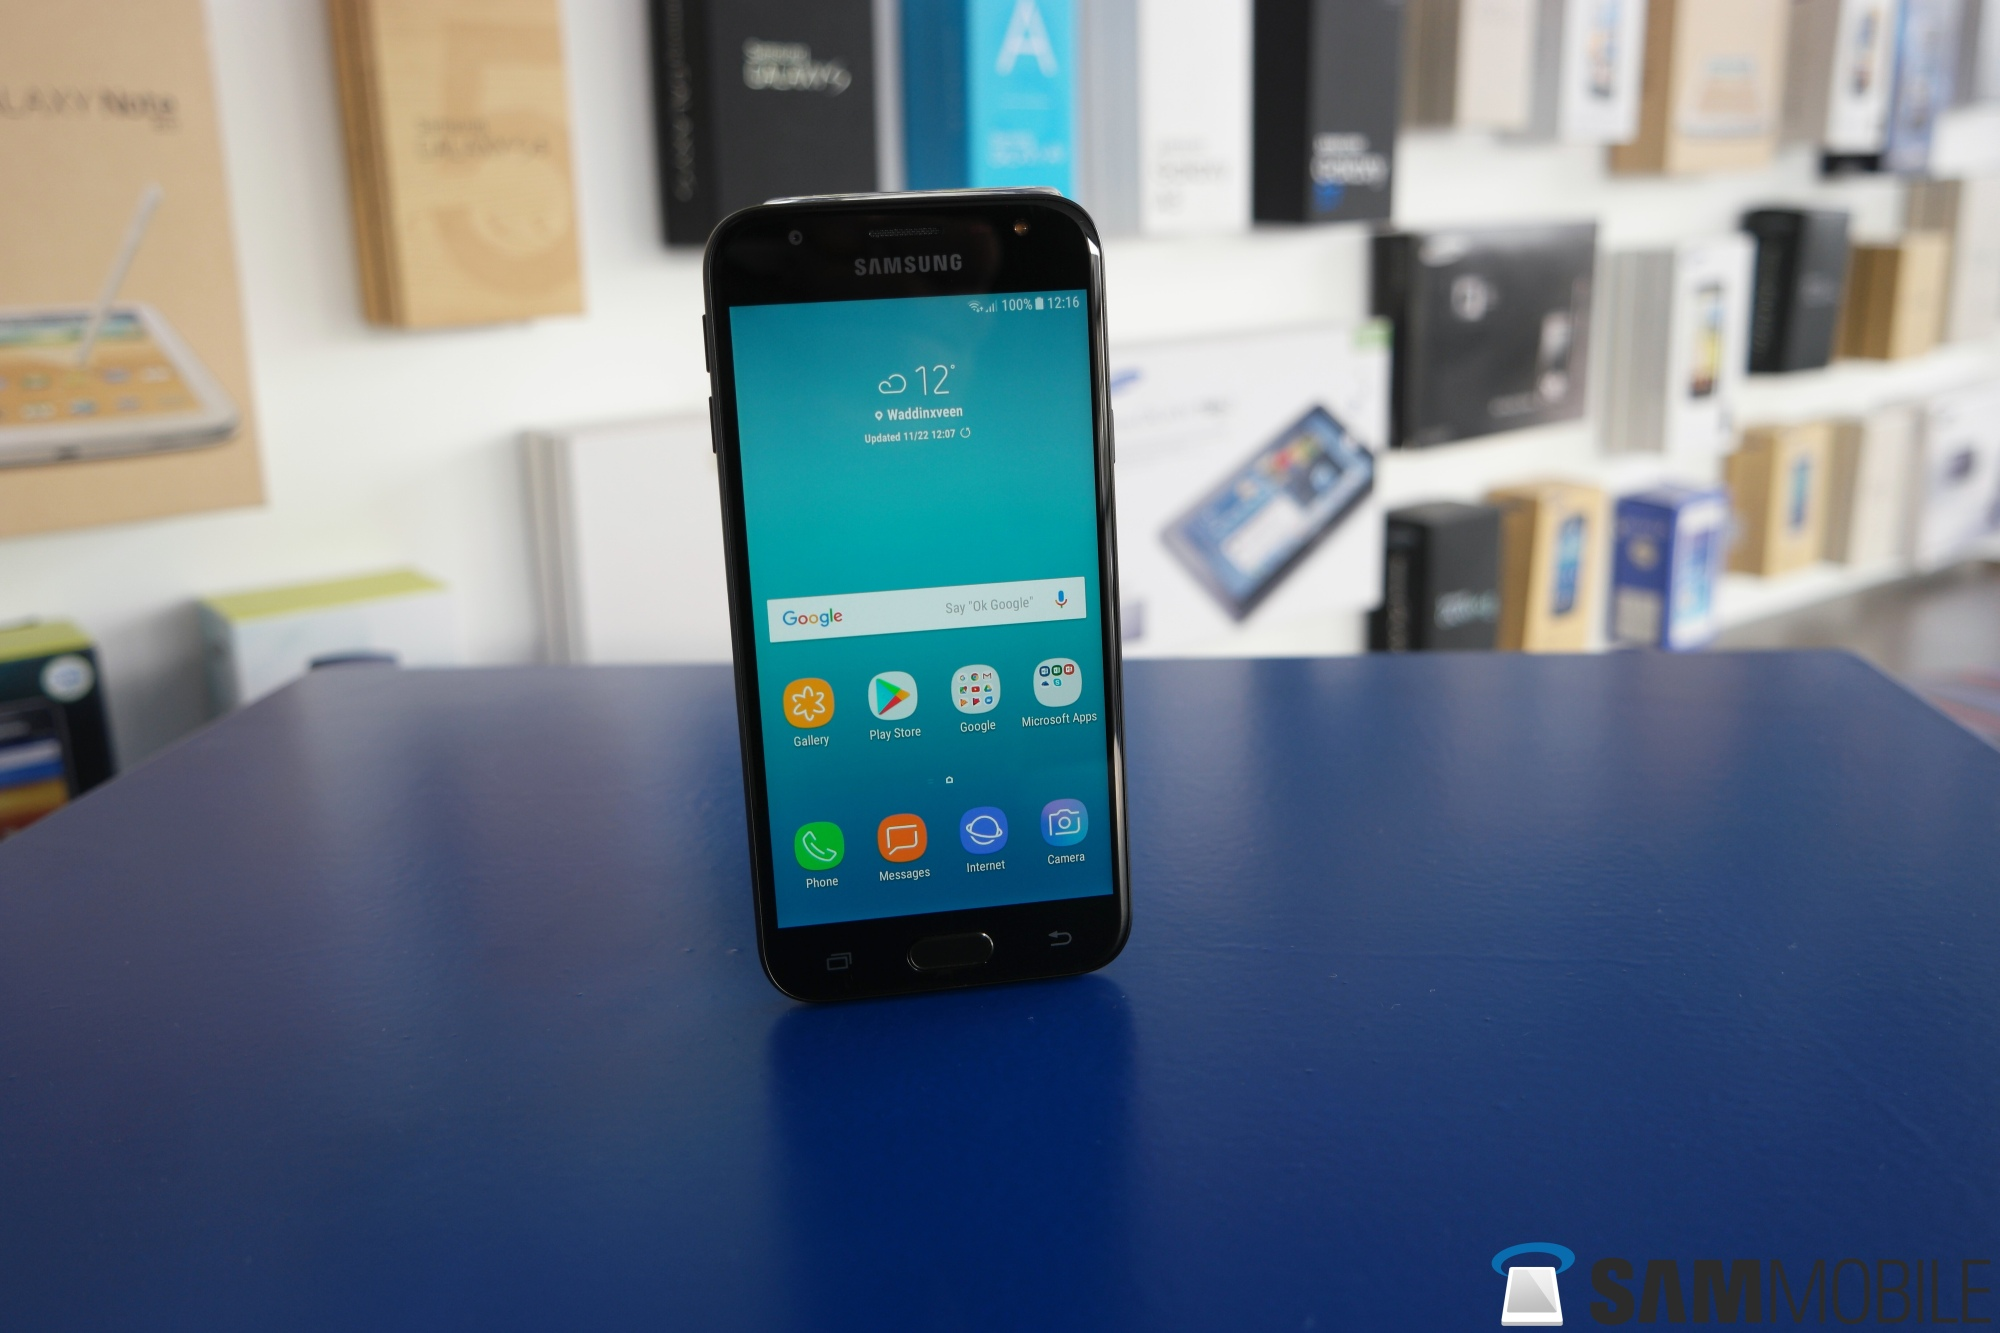 Samsung Galaxy J3 (2017) Oreo update released in Russia and